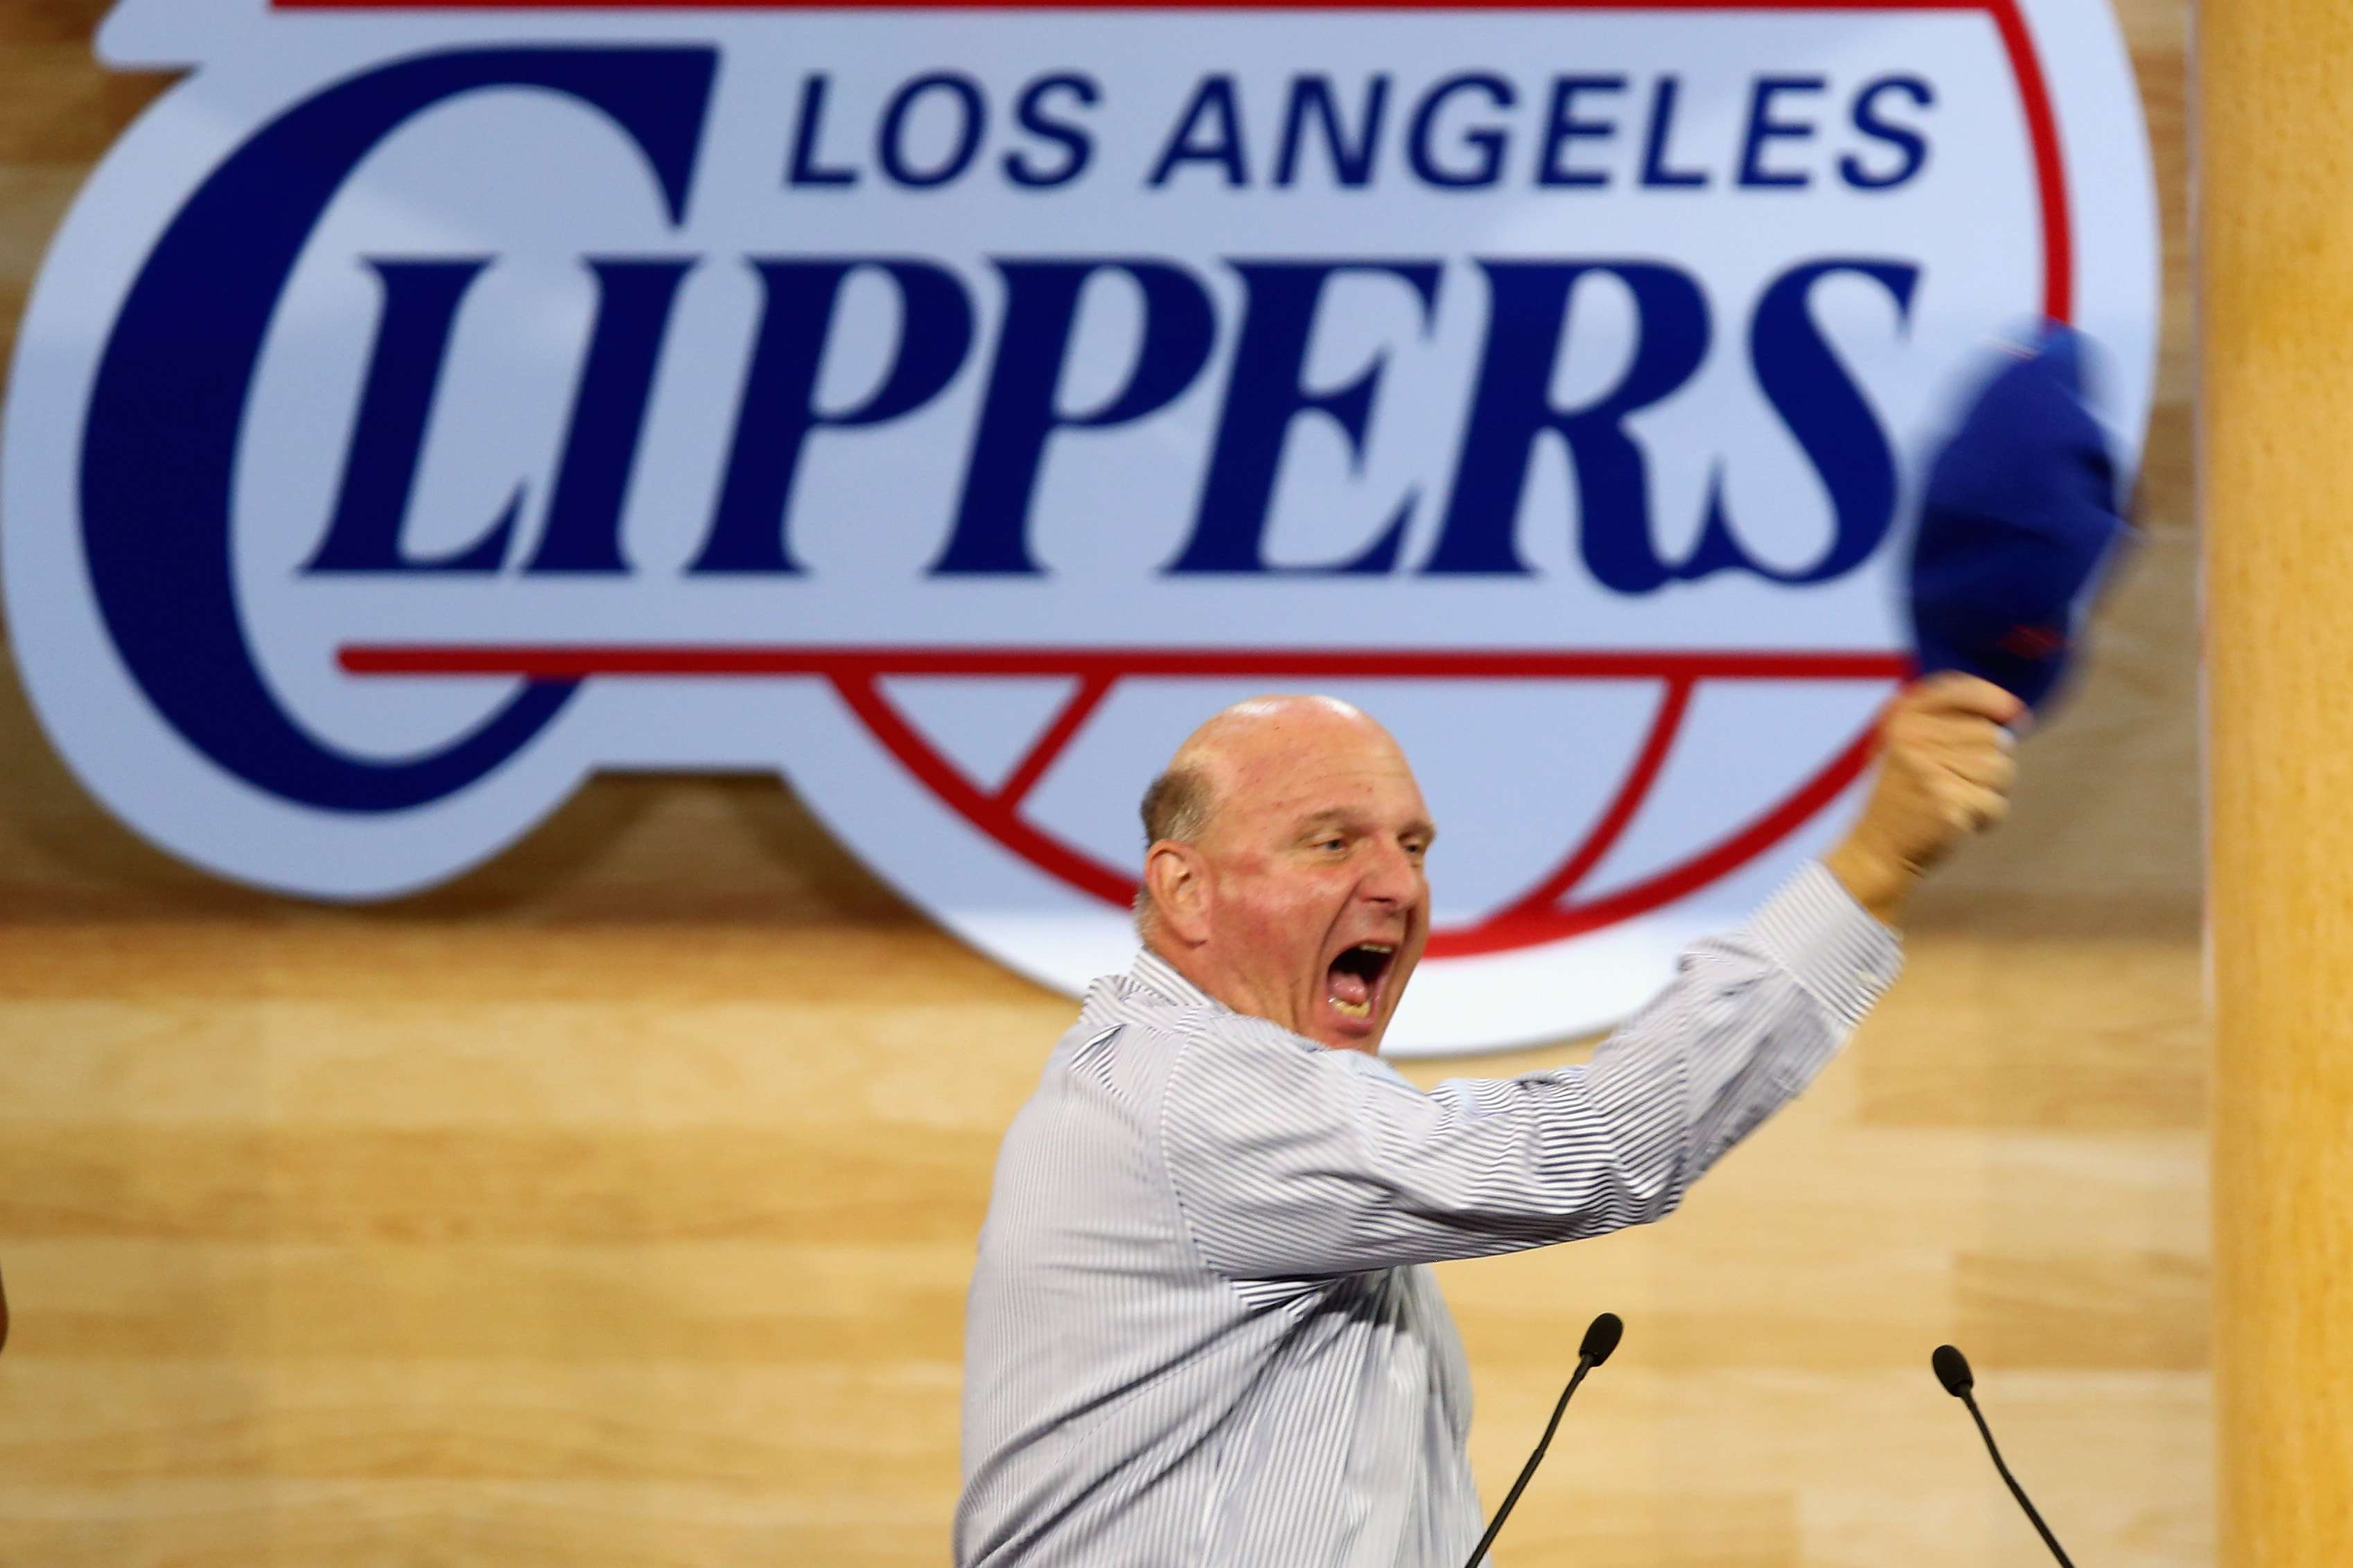 Steve Ballmer baniu aparelhos Apple da franquia Foto: Jeff Gross/Getty Images